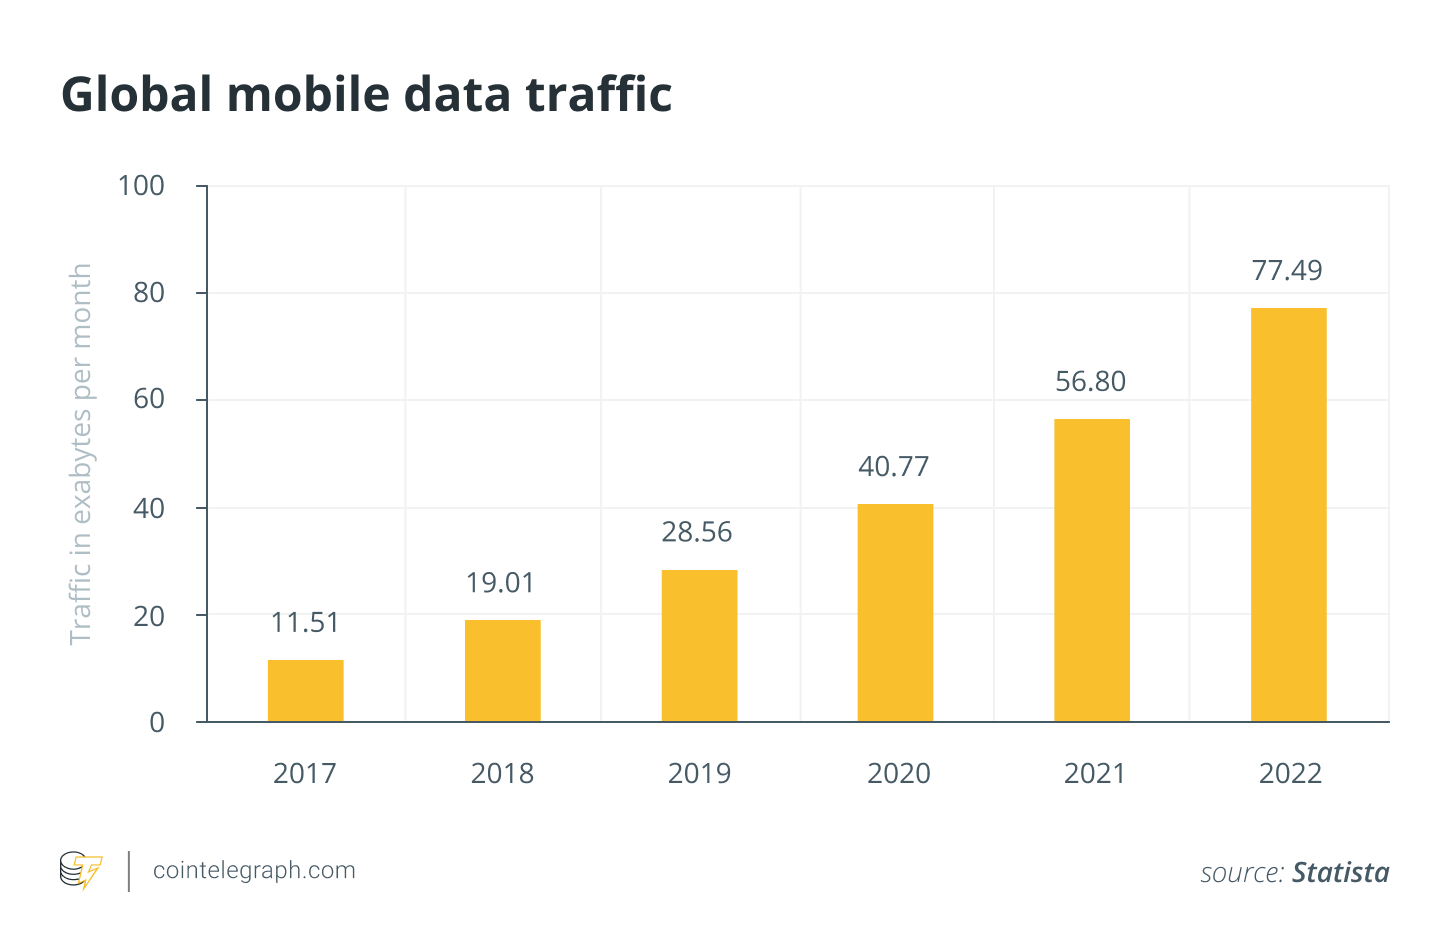 Global mobile data traffic